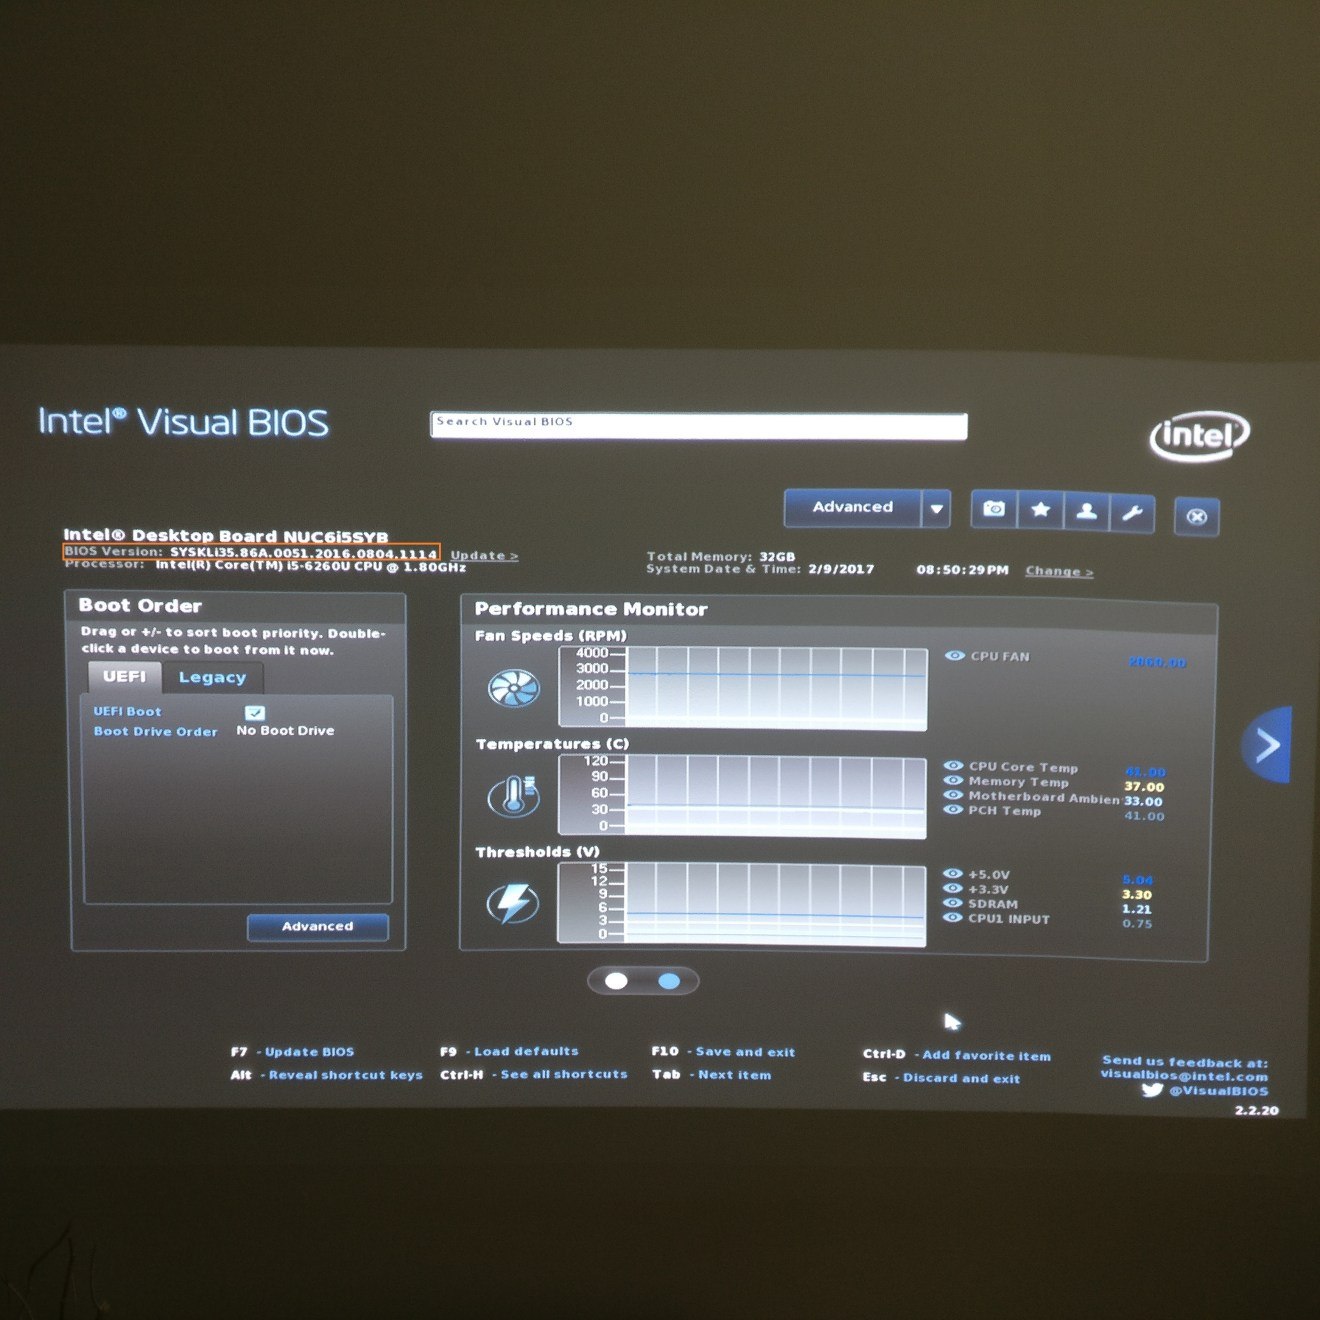 domalab.com Intel NUC BIOS visual